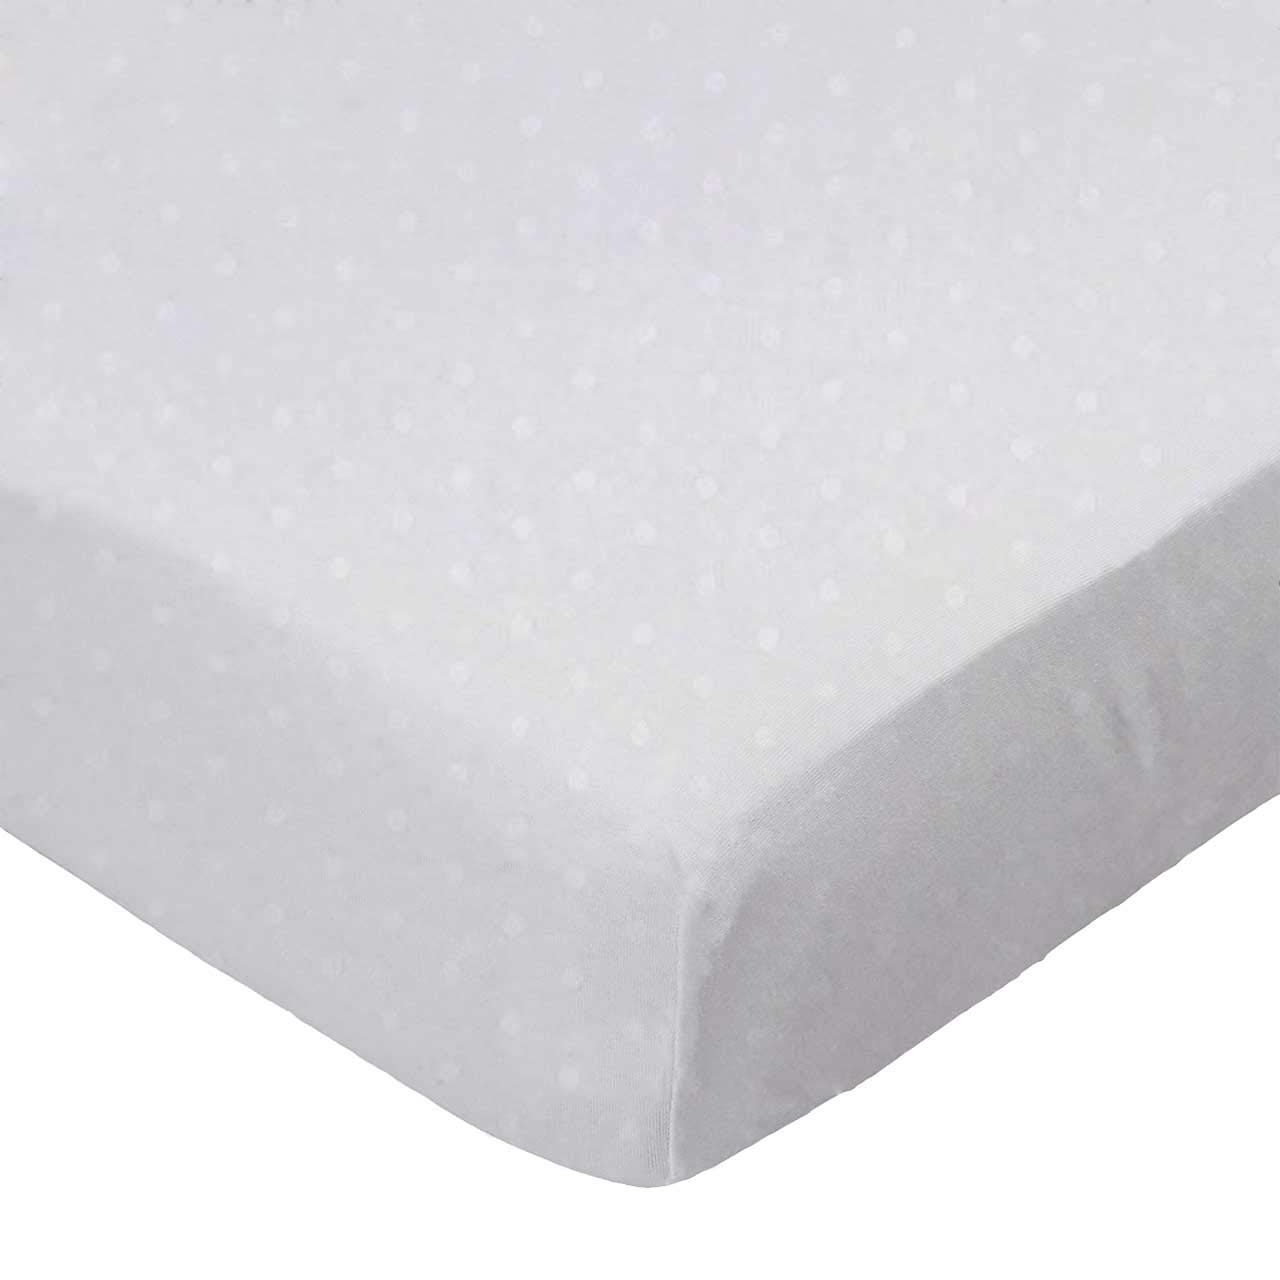 SheetWorld Fitted Pack N Play (Graco Square Playard) Sheet - White Swiss Dot Jersey Knit - Made In USA by sheetworld   B002SUZQ2W